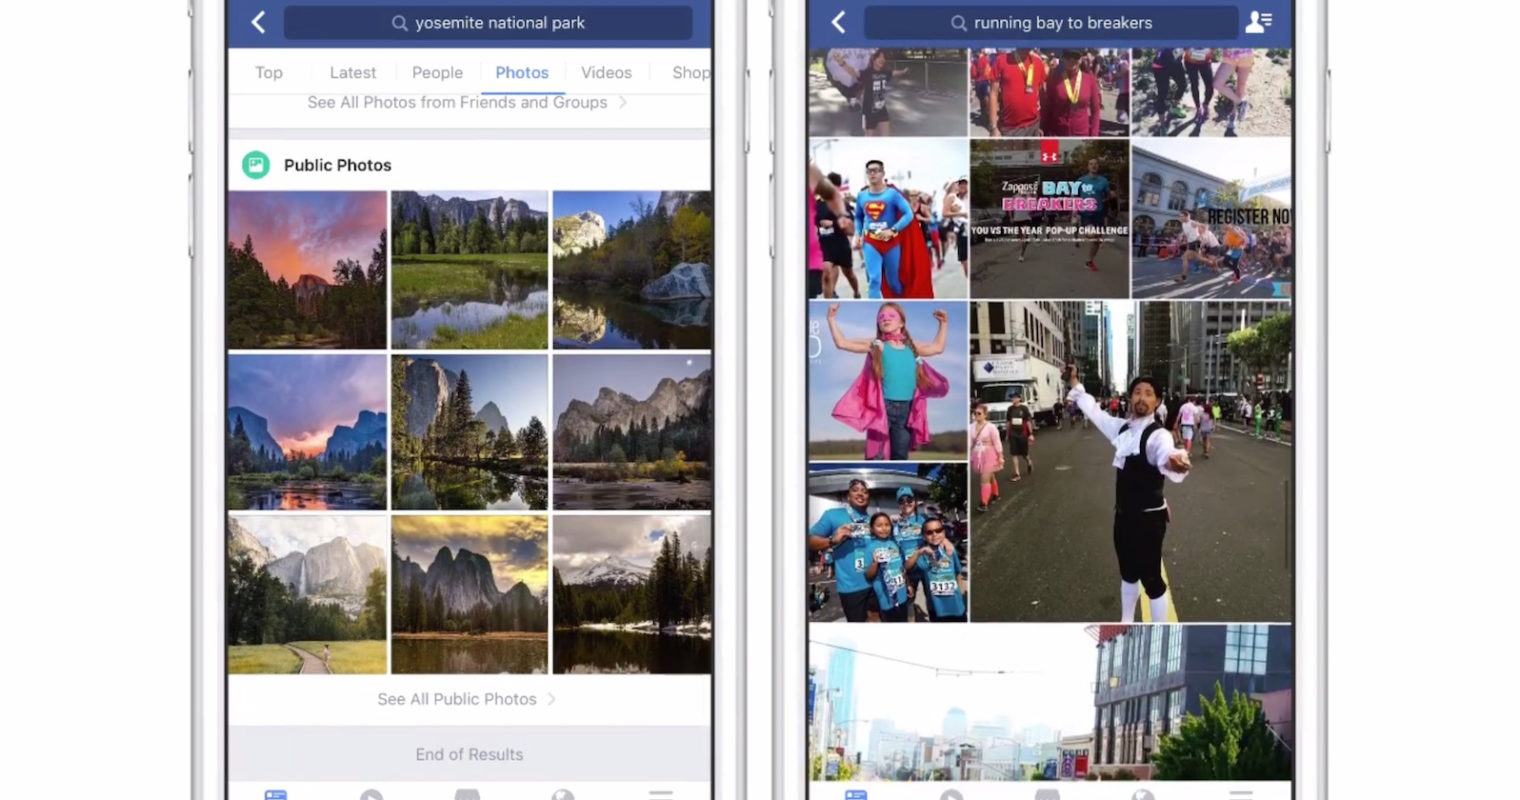 Facebook Search Now Recognizes Objects in Photos